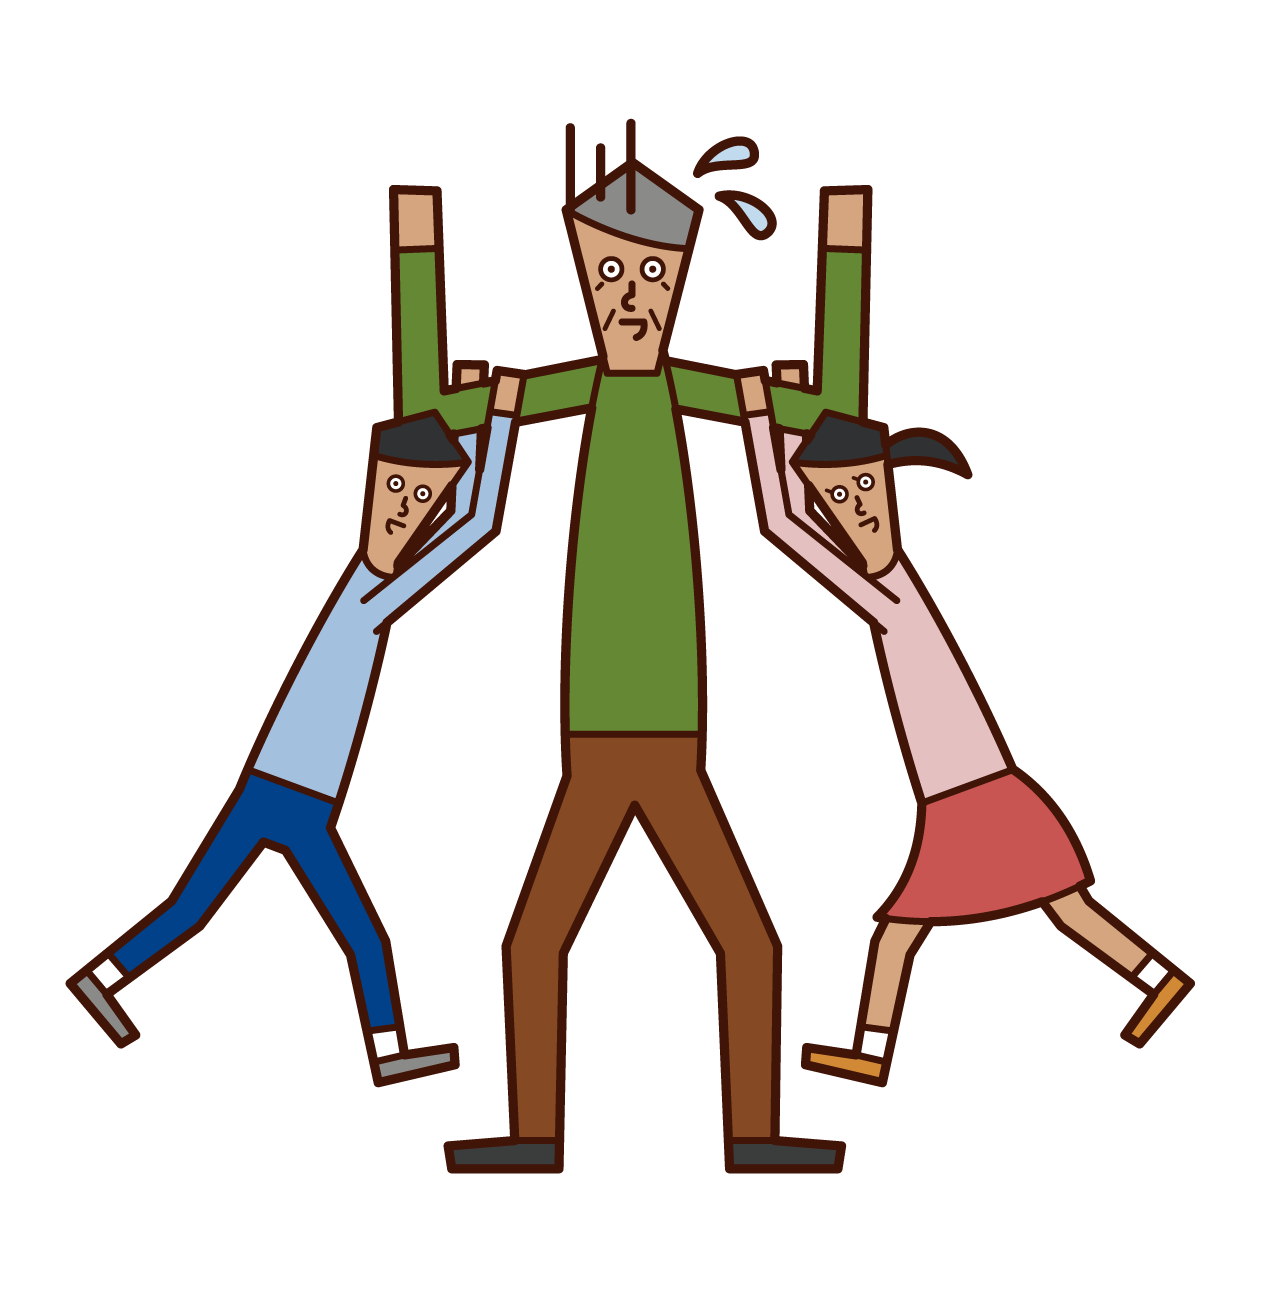 Illustration of an old man playing with children